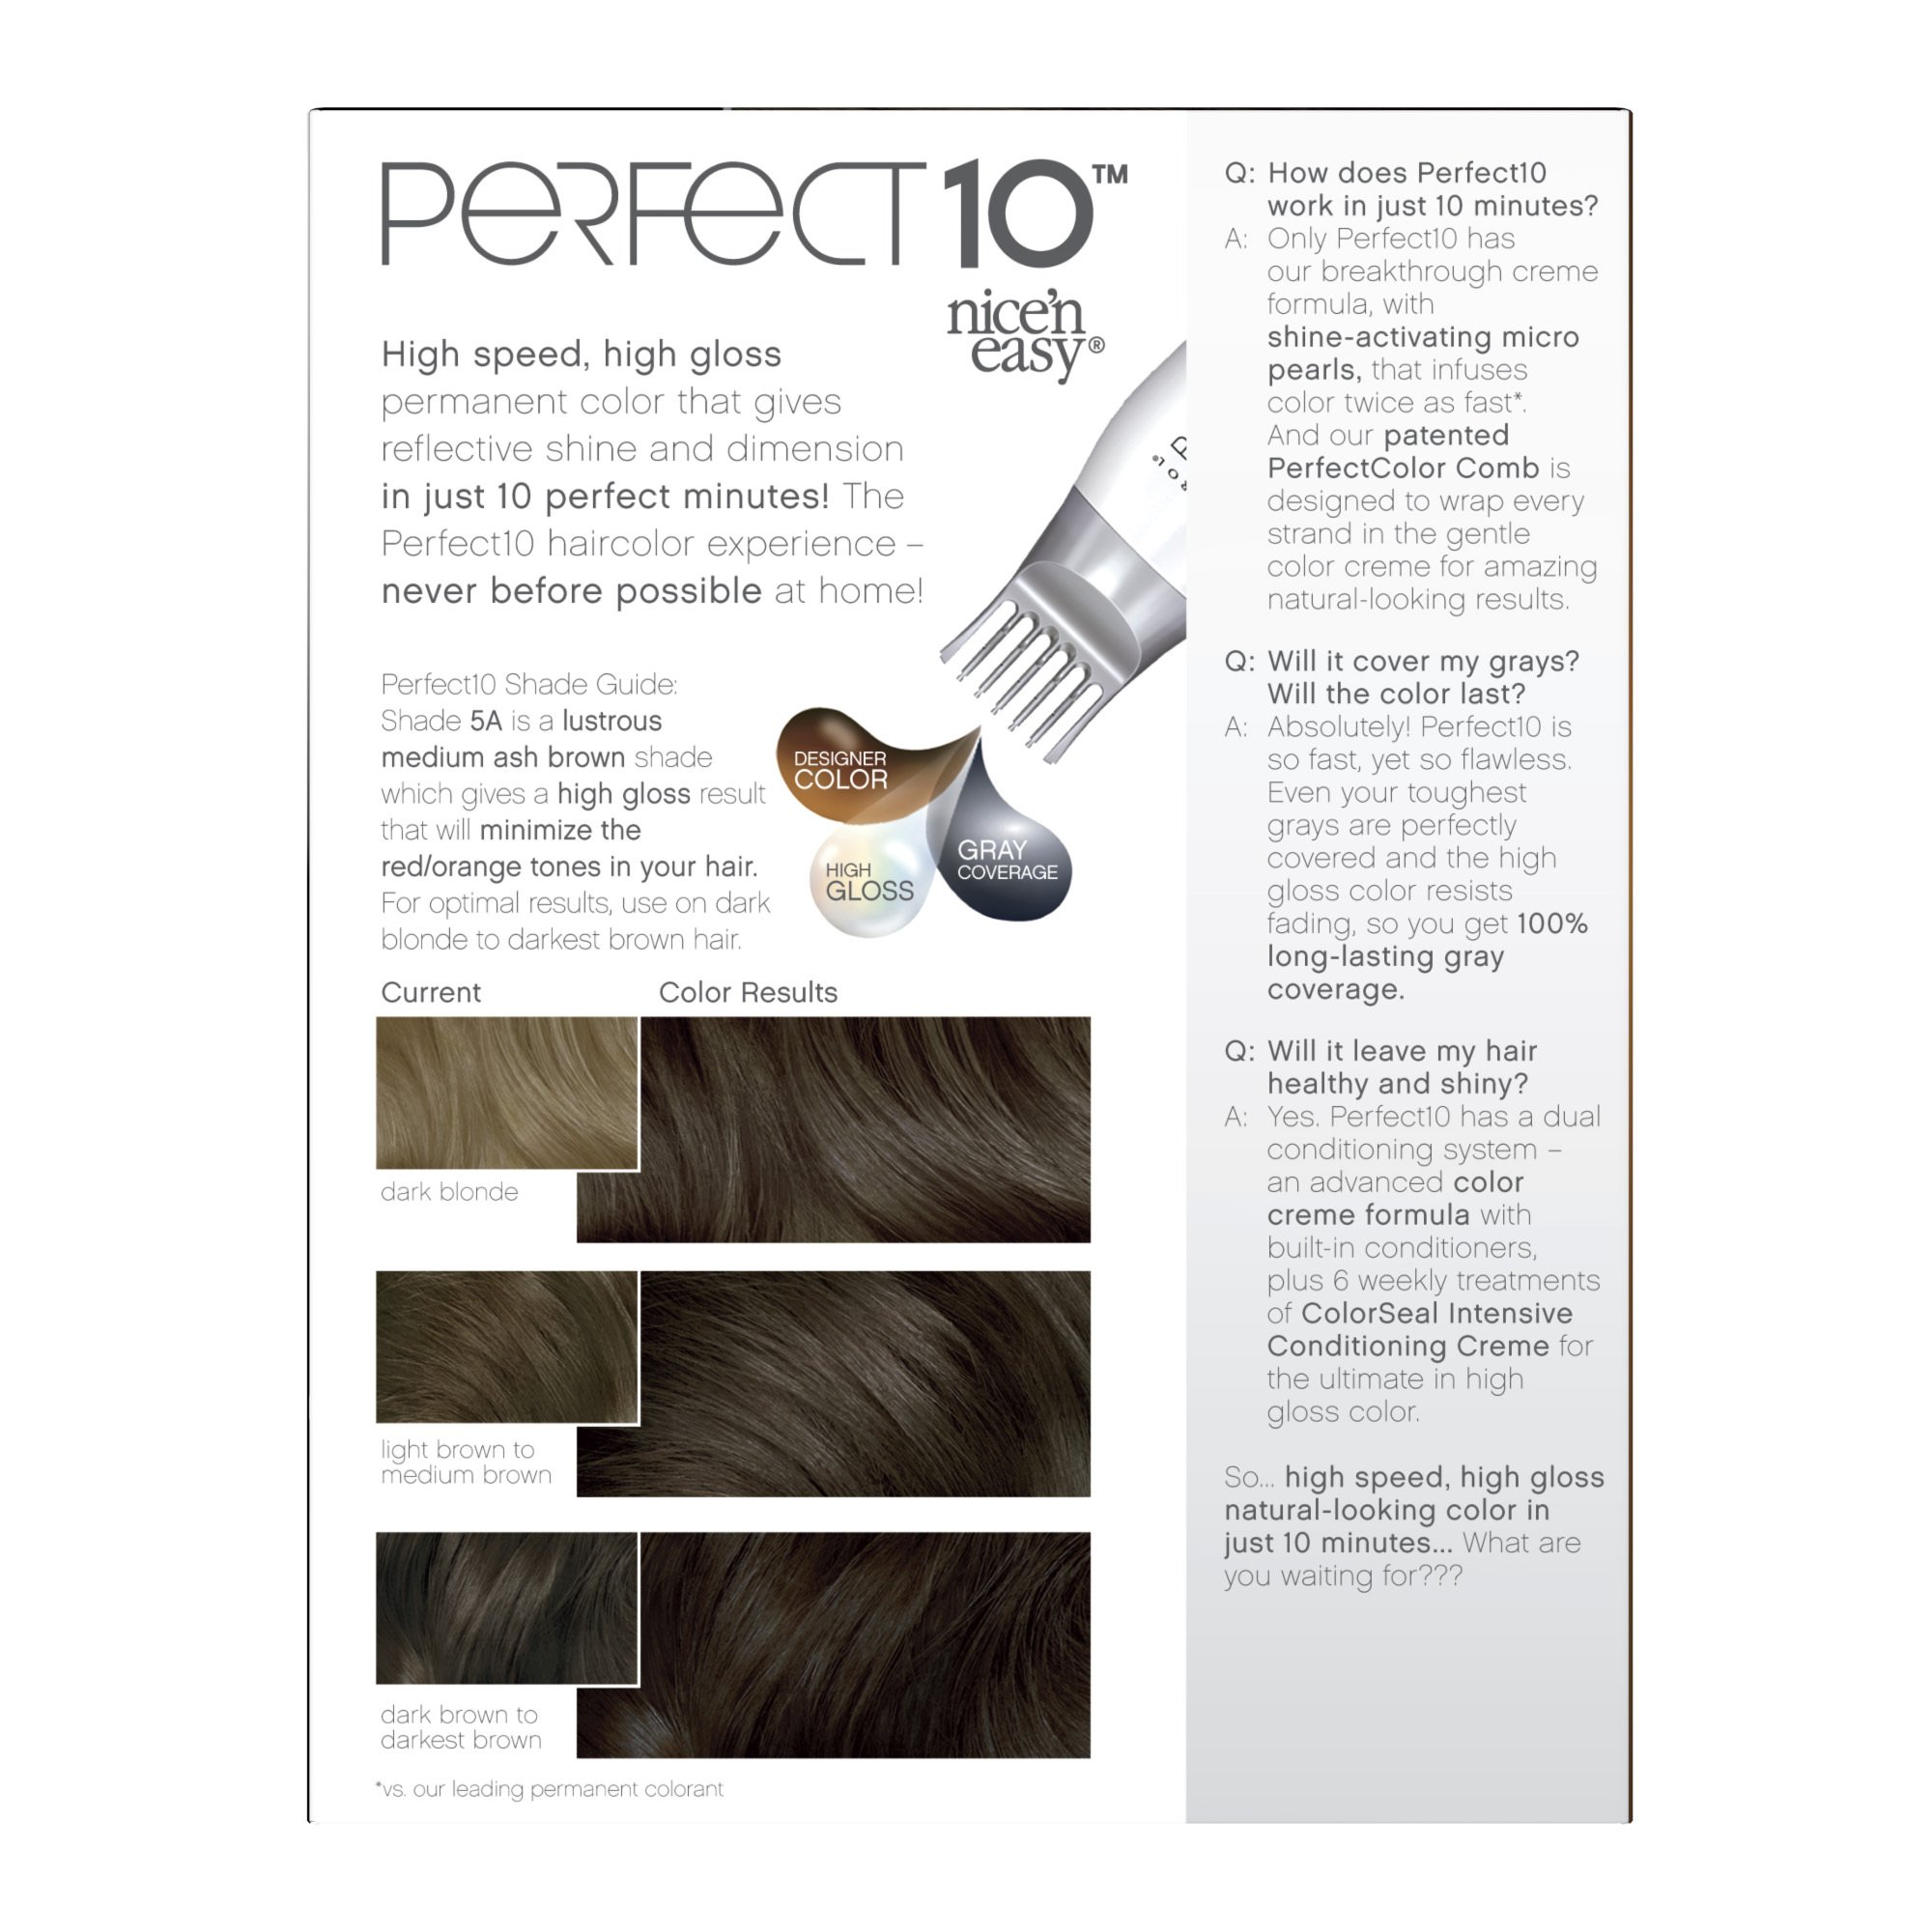 Clairol Perfect 10 By Nice 'N Easy Hair Color Kit (Pack of 2), 005A Medium Ash Brown, Includes Comb Applicator, Lasts Up To 60 Days by Clairol (Image #4)